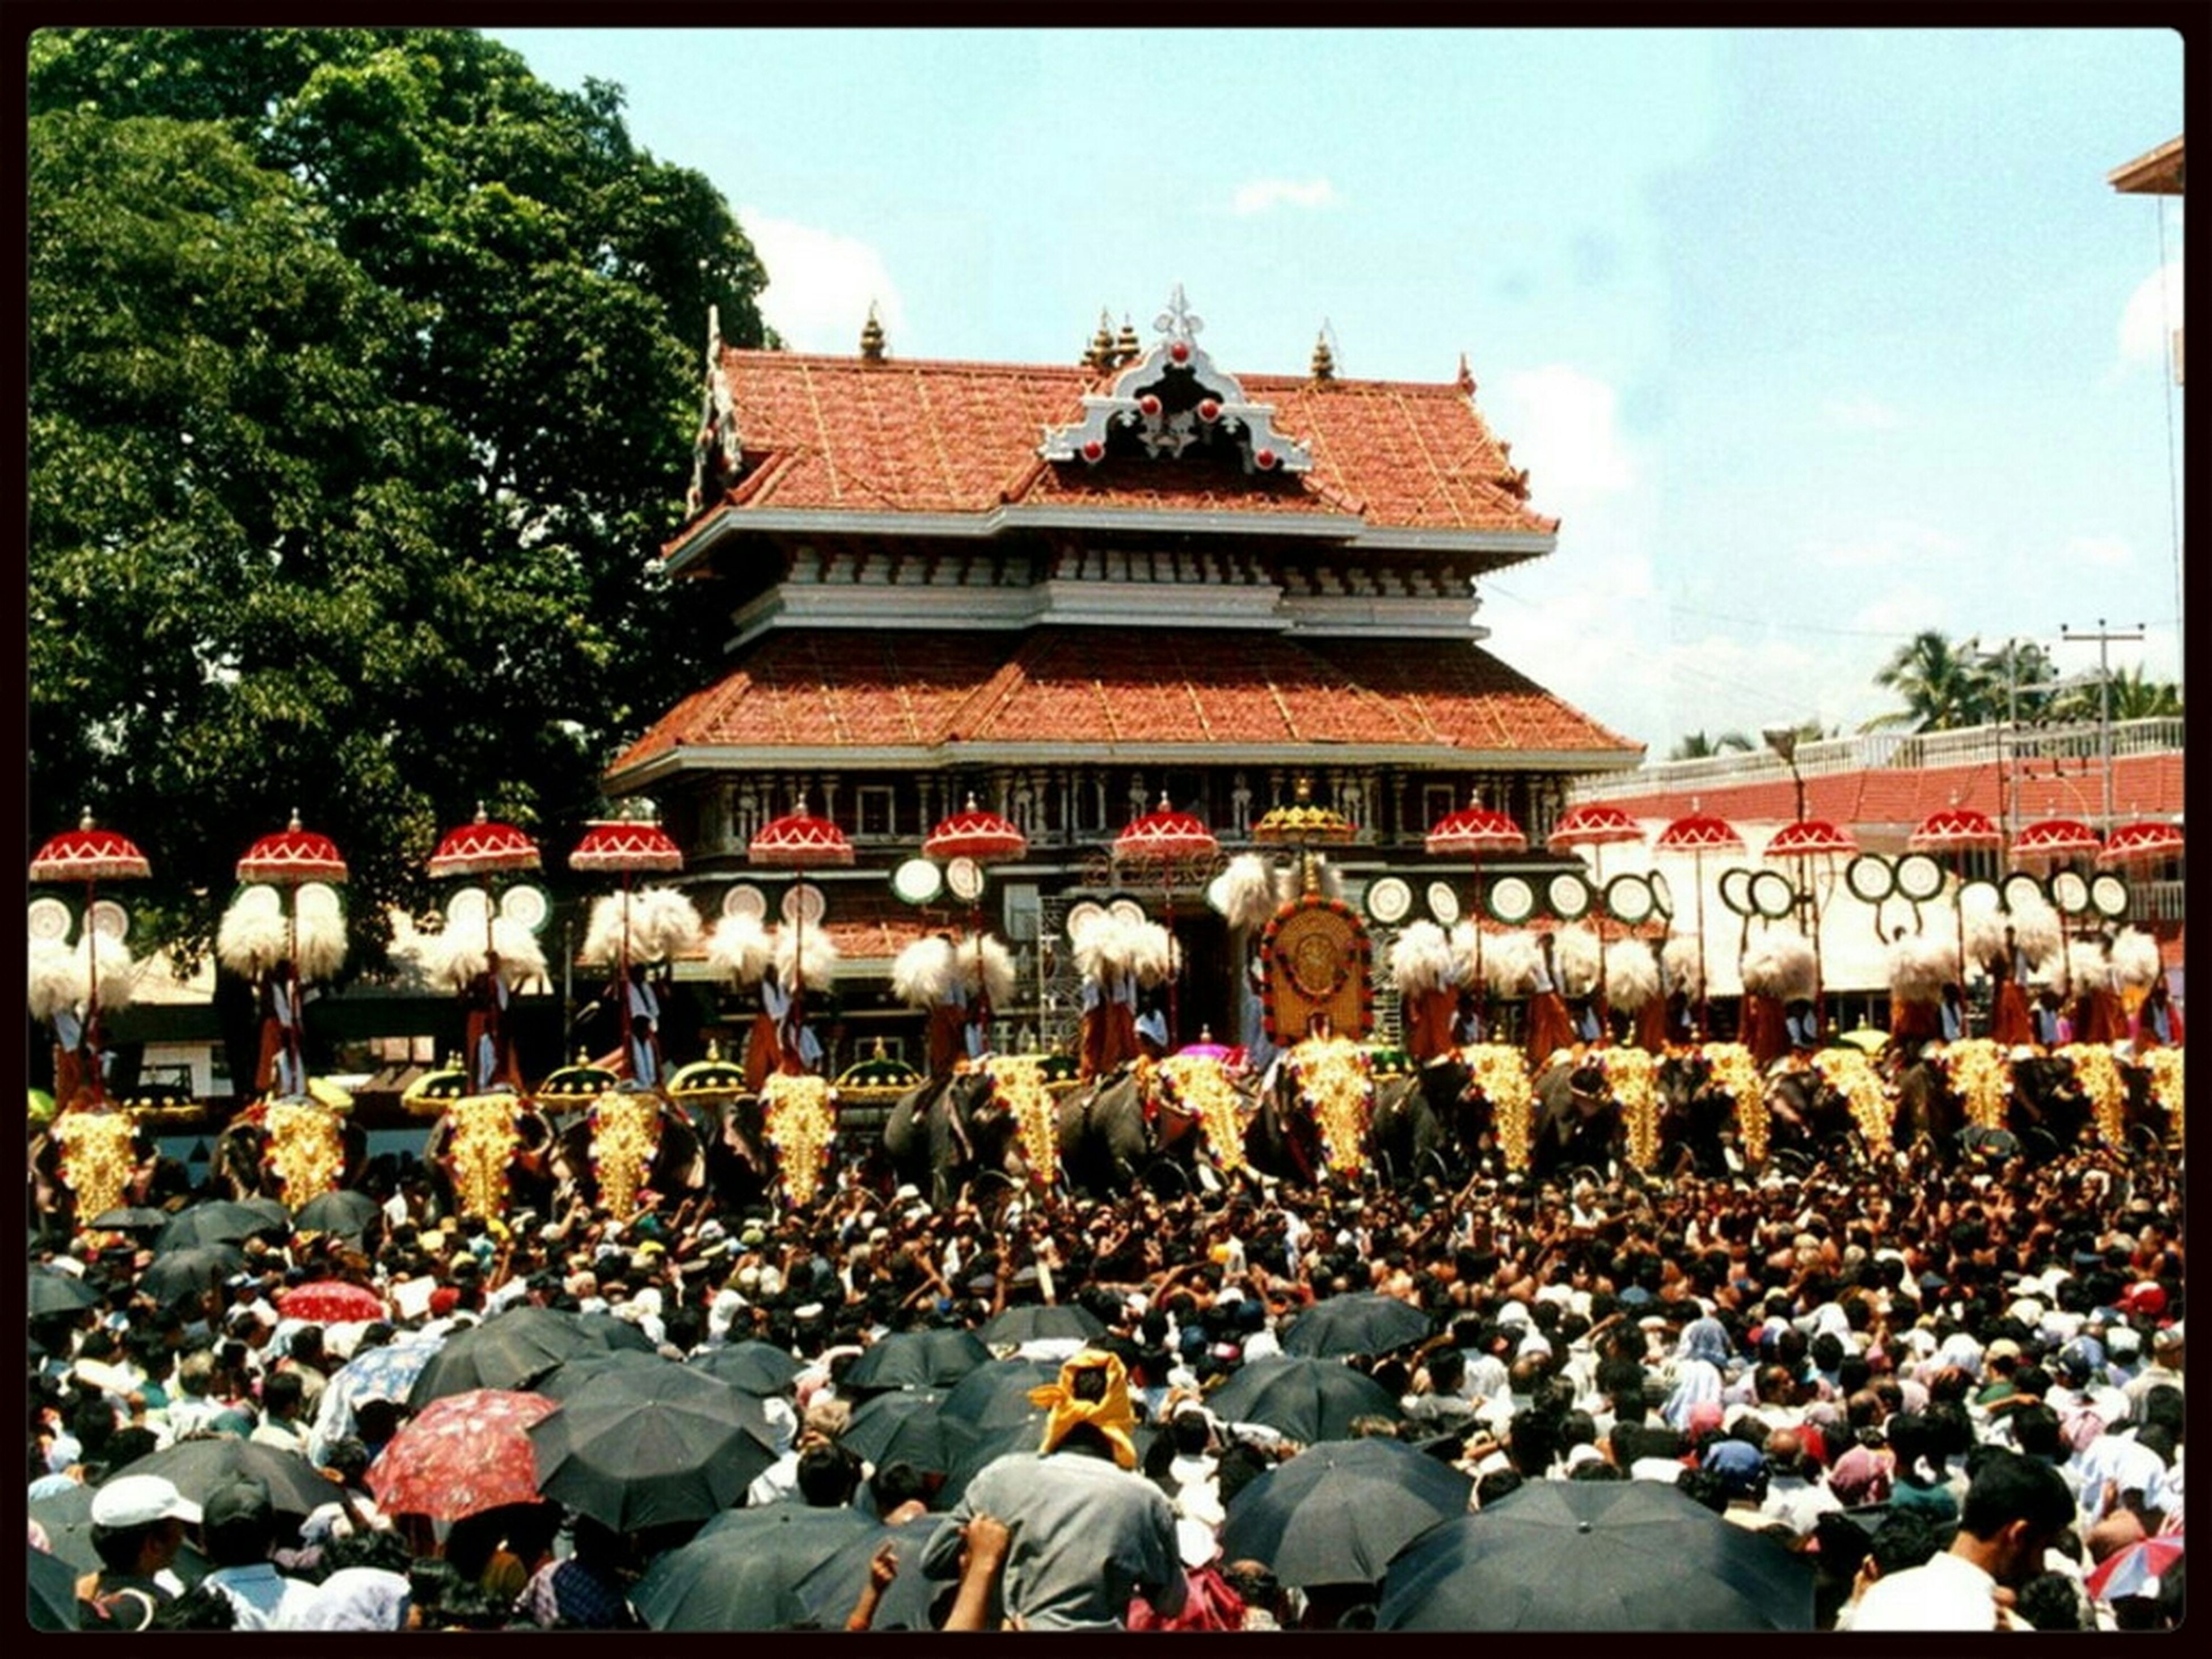 Discover Your City Thrissur Pooram! Kerala India Festival